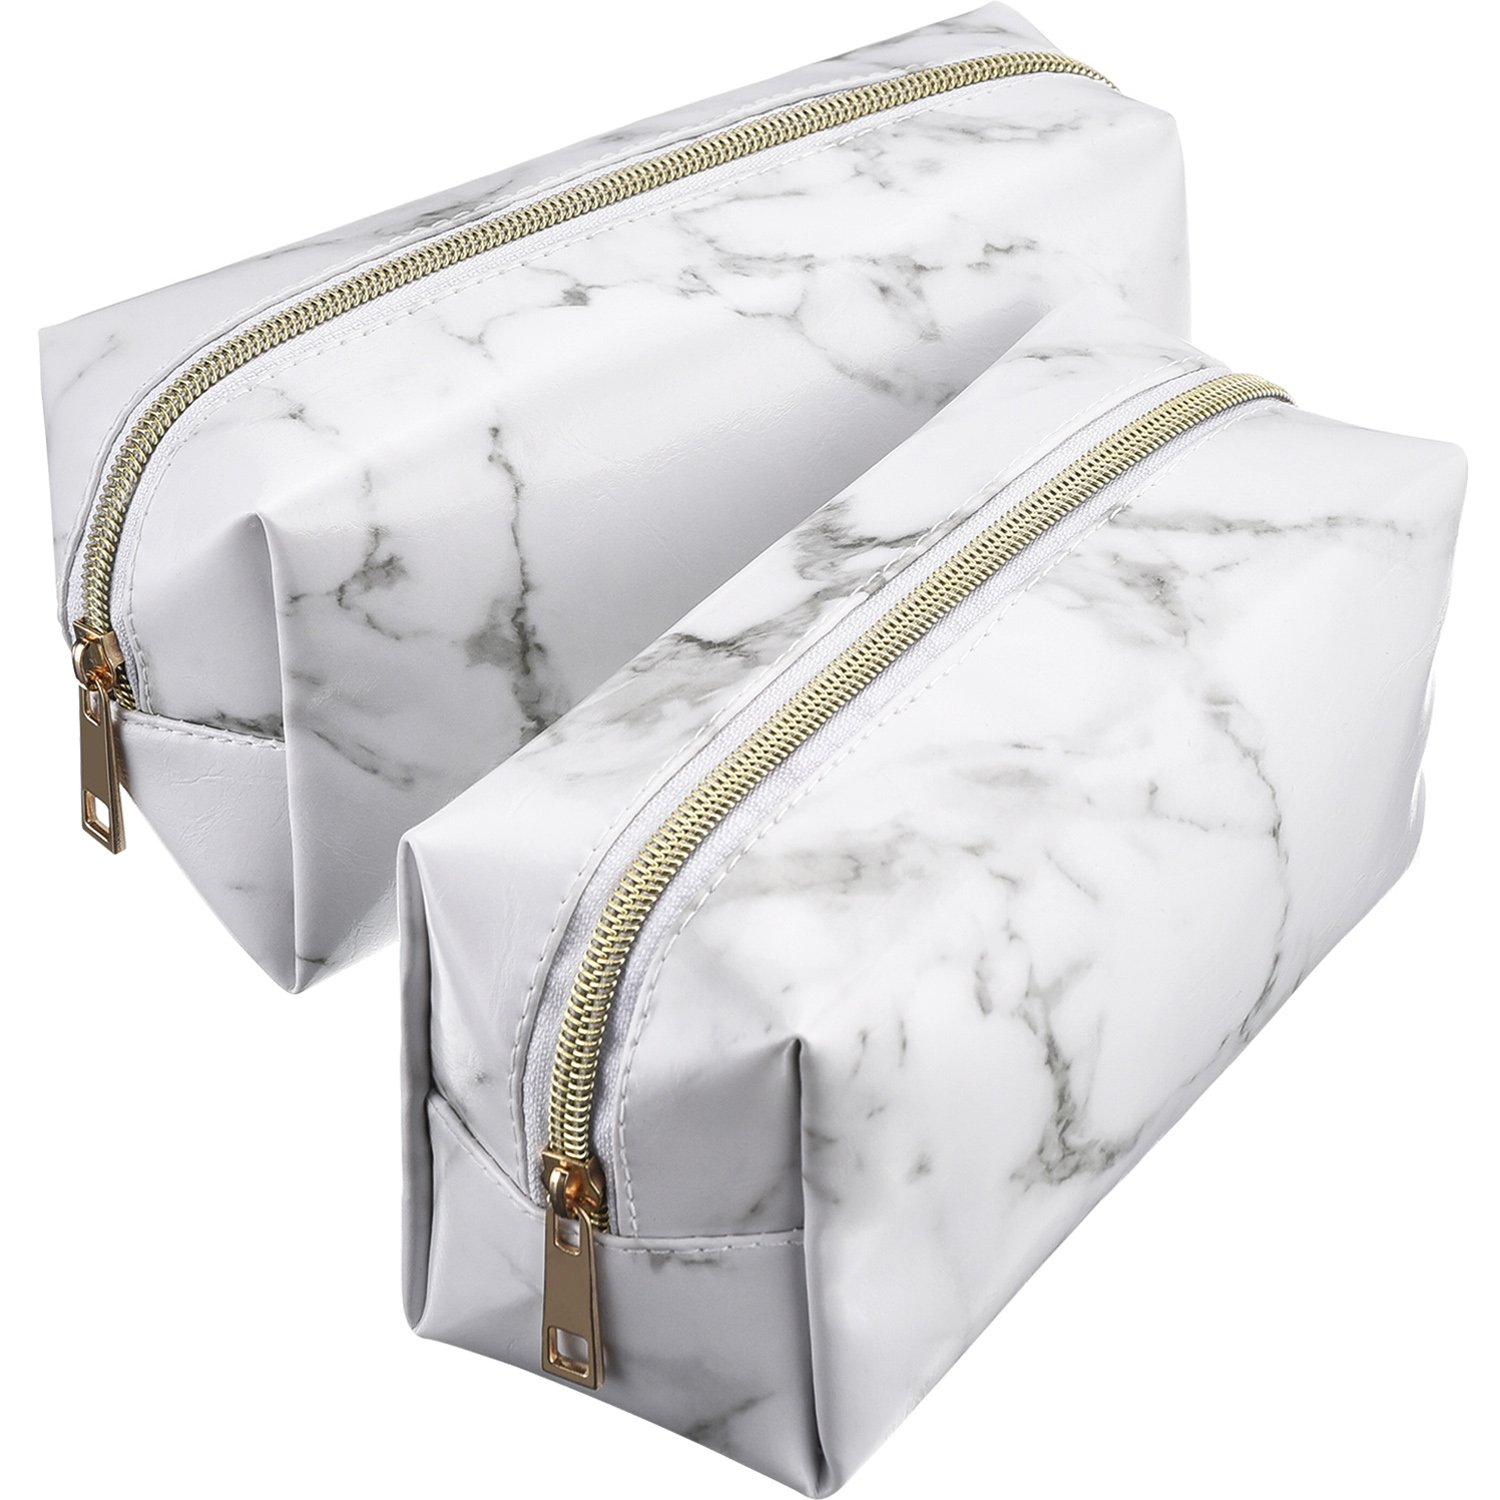 Mtlee 2 Pieces Cosmetic Toiletry Makeup Bag Pouch Gold Zipper Storage Bag Marble Pattern Portable Makeup Brushes Bag (White)